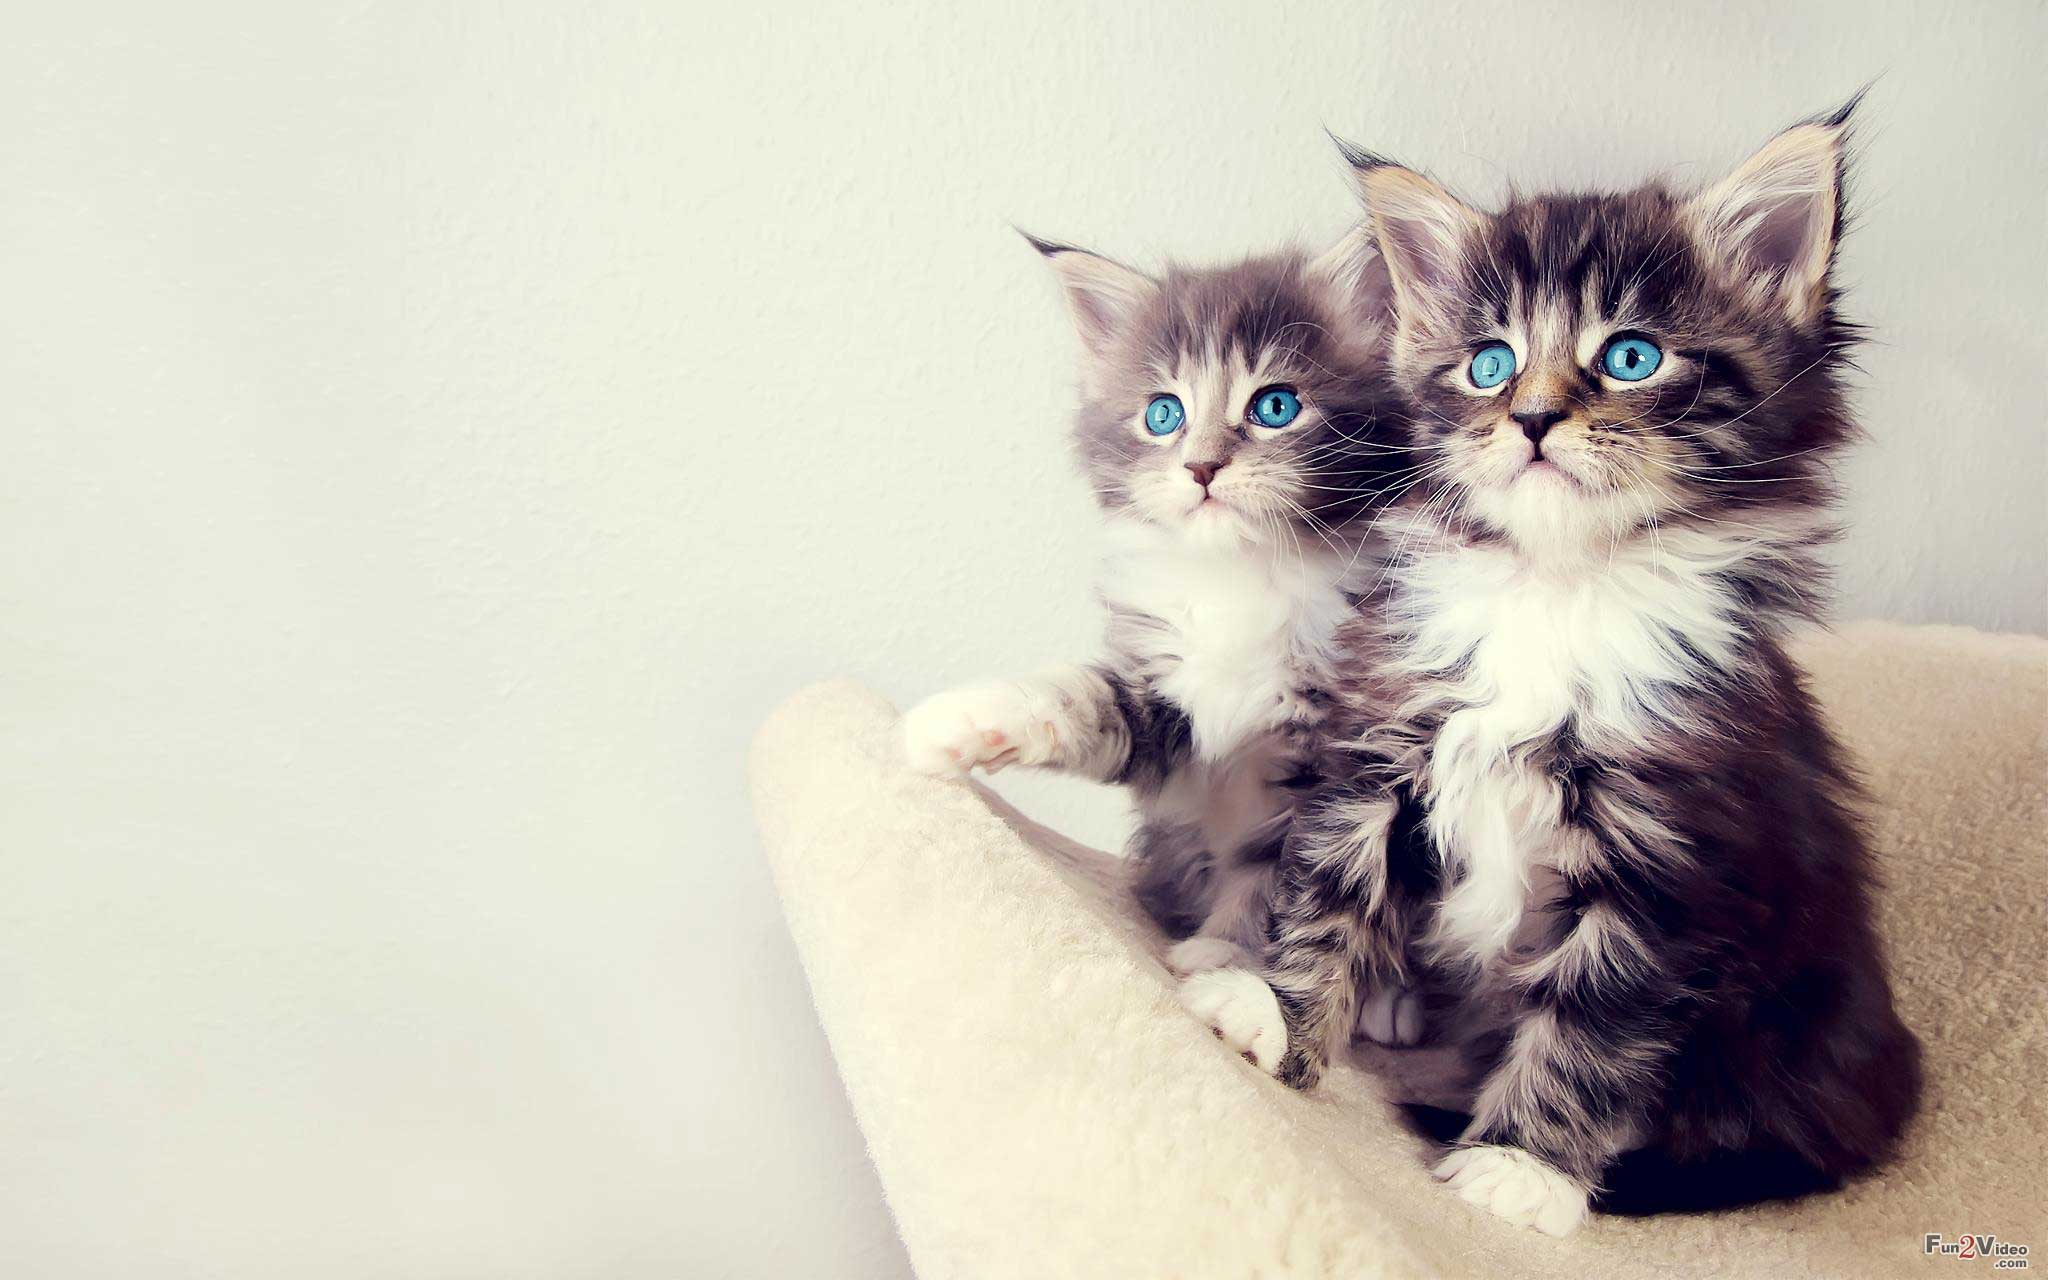 Beautiful Cute Cats Wallpapers Hd Pictures Live Hd Wallpaper 2048x1280